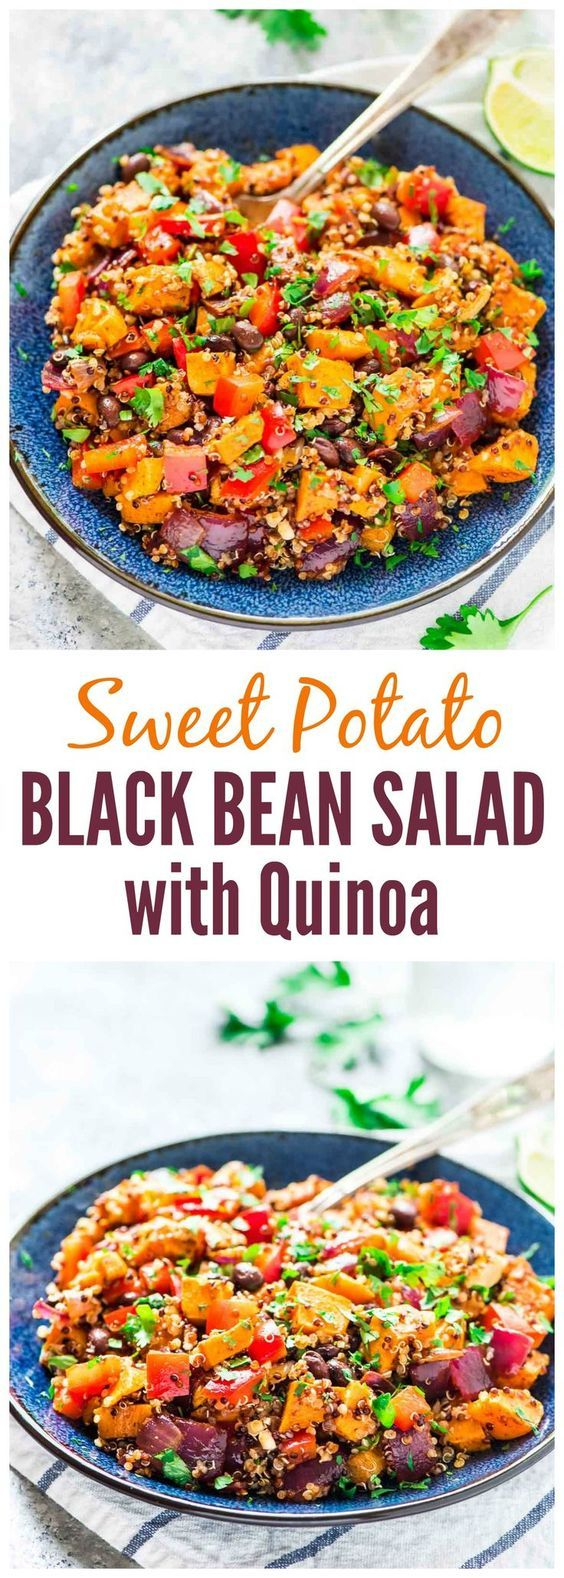 Roasted Sweet Potato Quinoa Black Bean Salad. Healthy, filling, and DELICIOUS! Perfect make-ahead recipe for healthy lunches, or for a side dish at parties and potlucks. {vegan, gluten free, dairy free} @wellplated